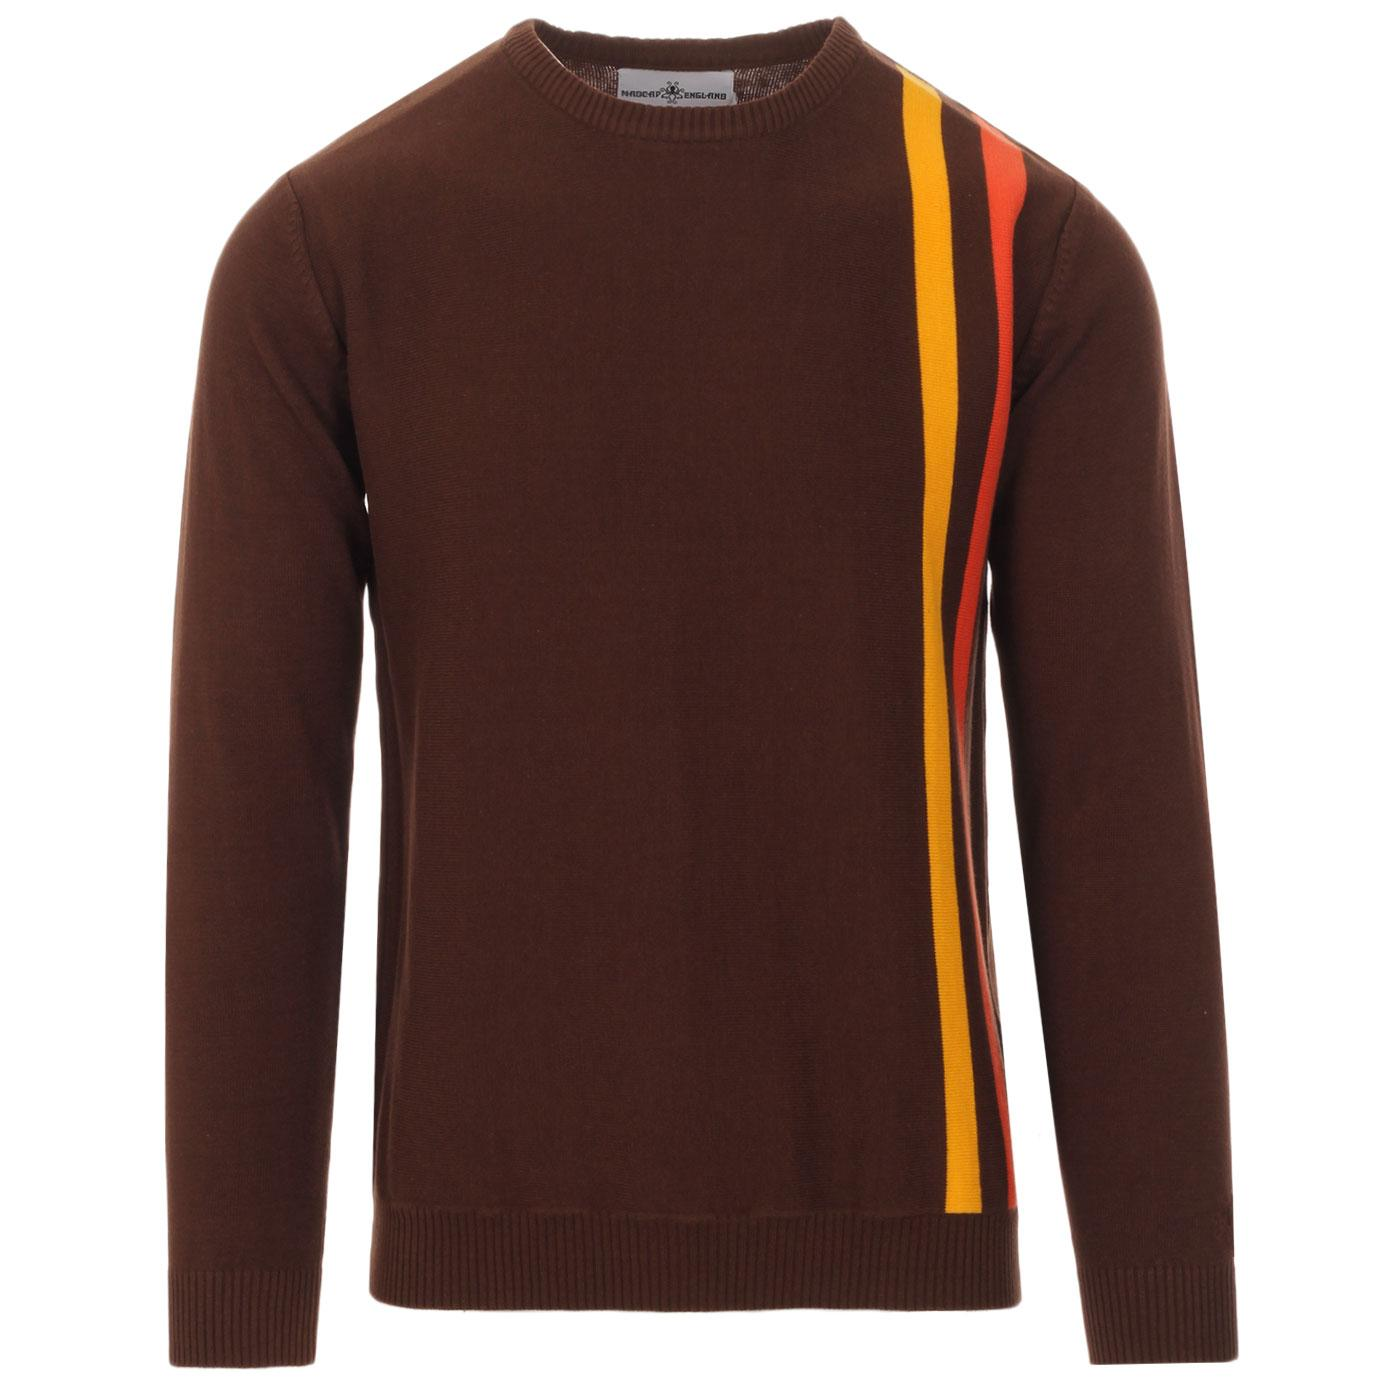 Action MADCAP ENGLAND 1960s Mod Racing Jumper (PS)